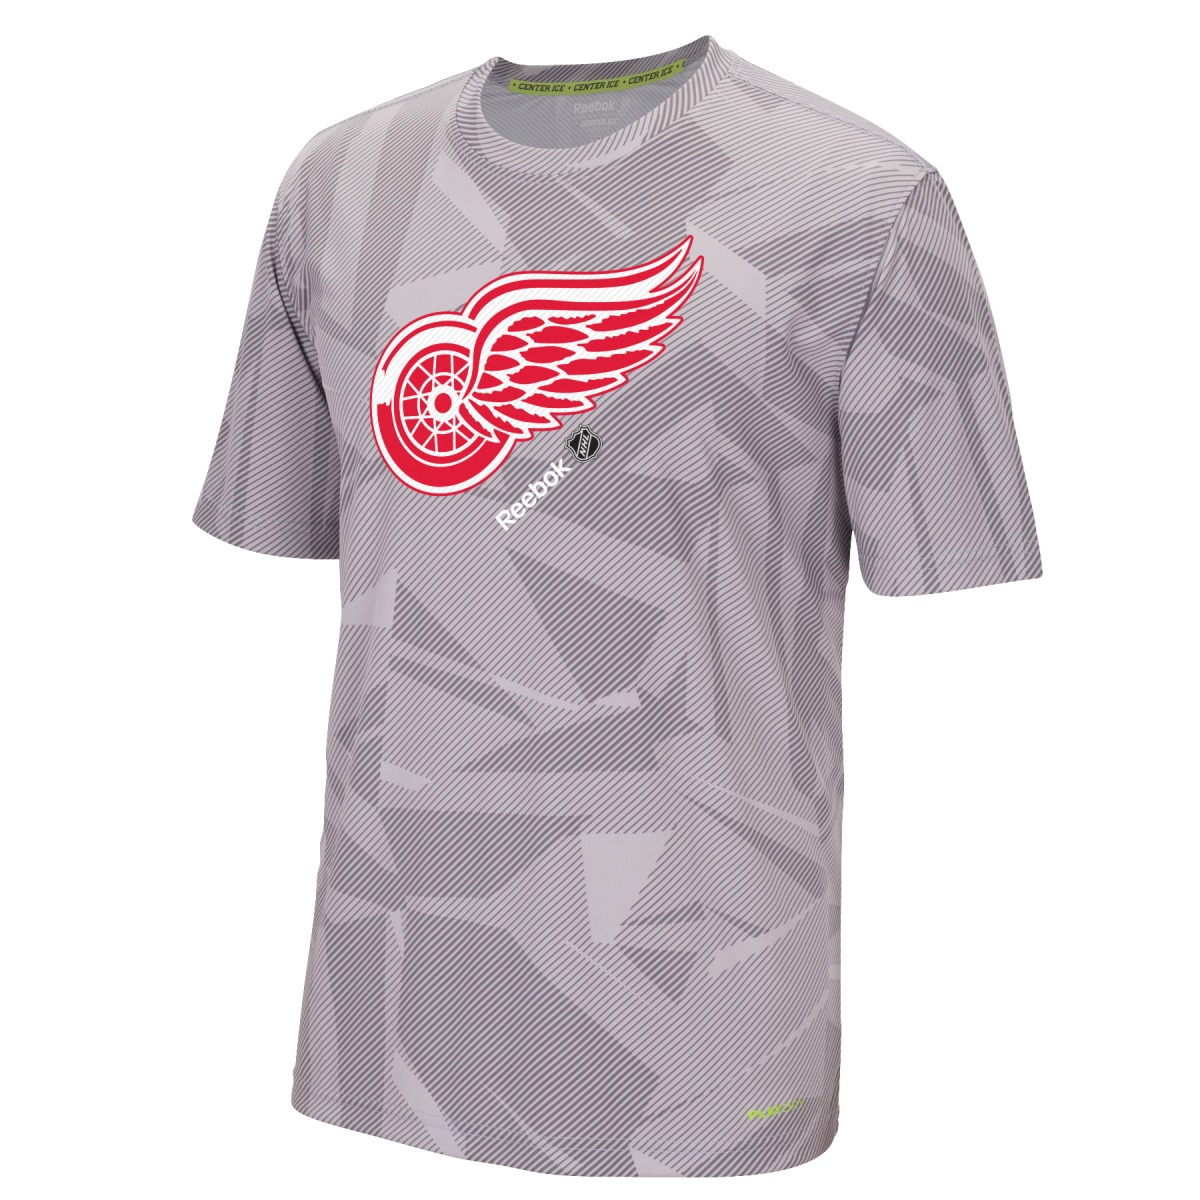 "Detroit Red Wings Reebok NHL 2015 Center Ice ""TNT"" S/S Performance Shirt"